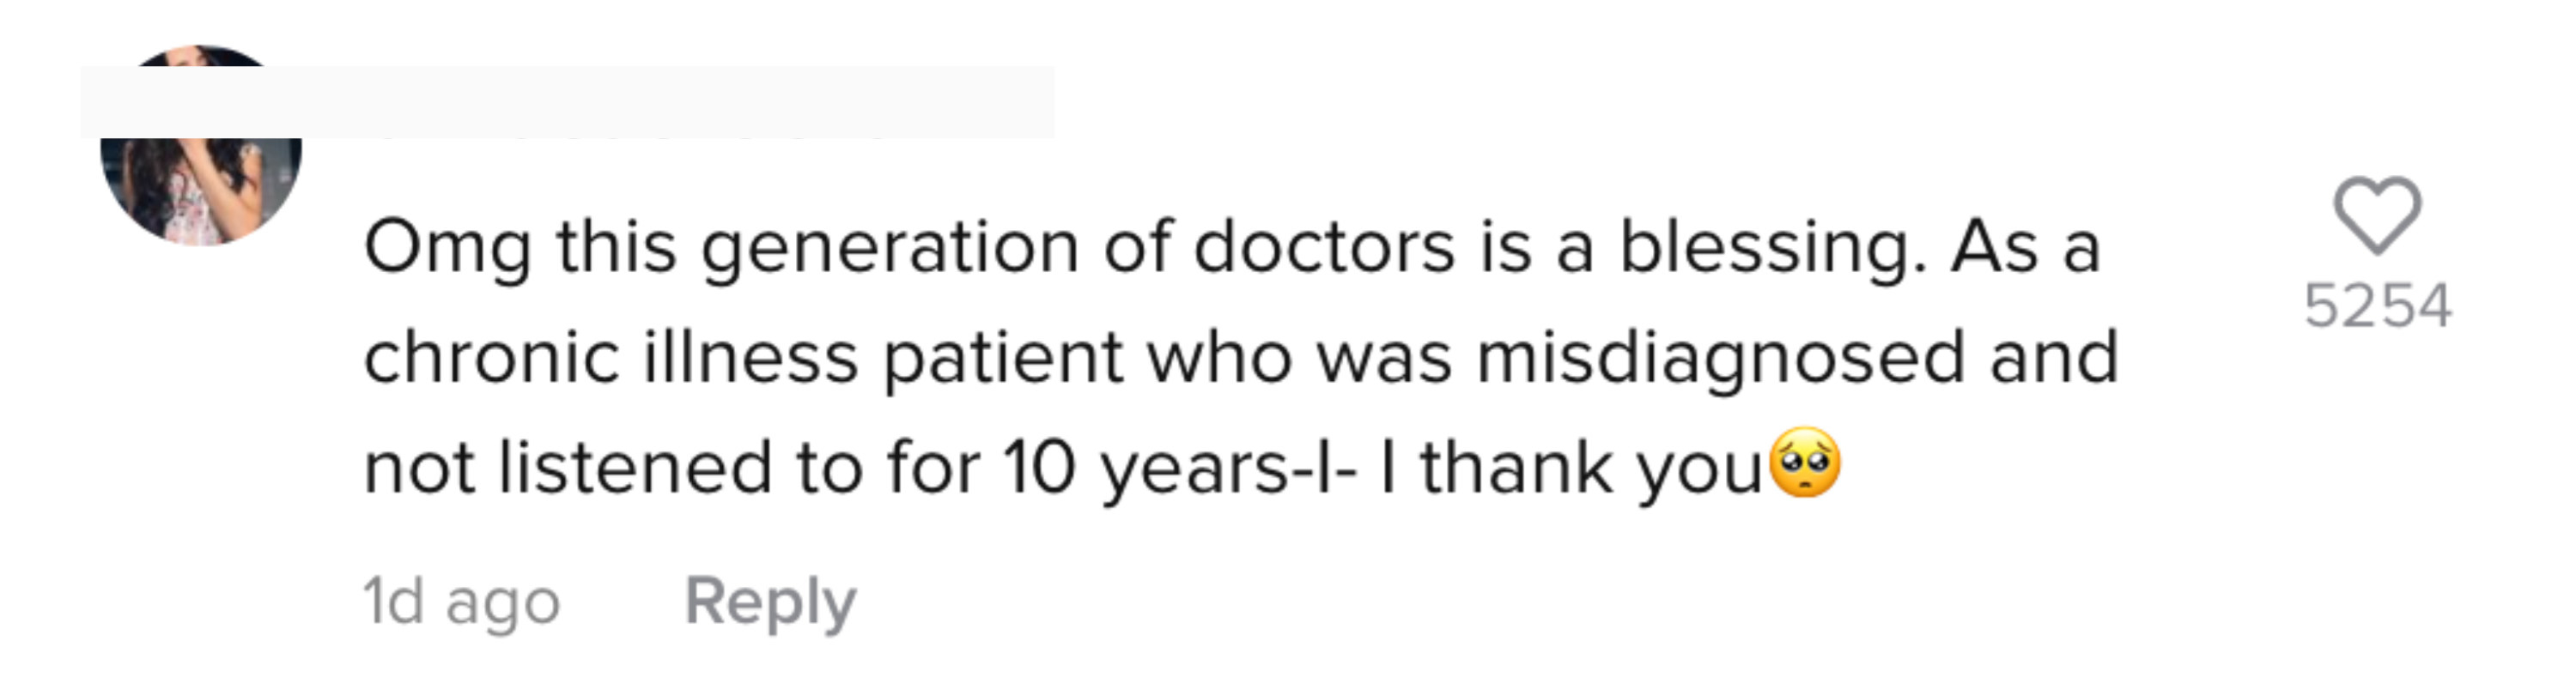 "Another comment says ""Omg this generation of doctors is a blessing. As a chronic illness patient who was misdiagnosed and not listened to for 10 years - I- I thank you"""